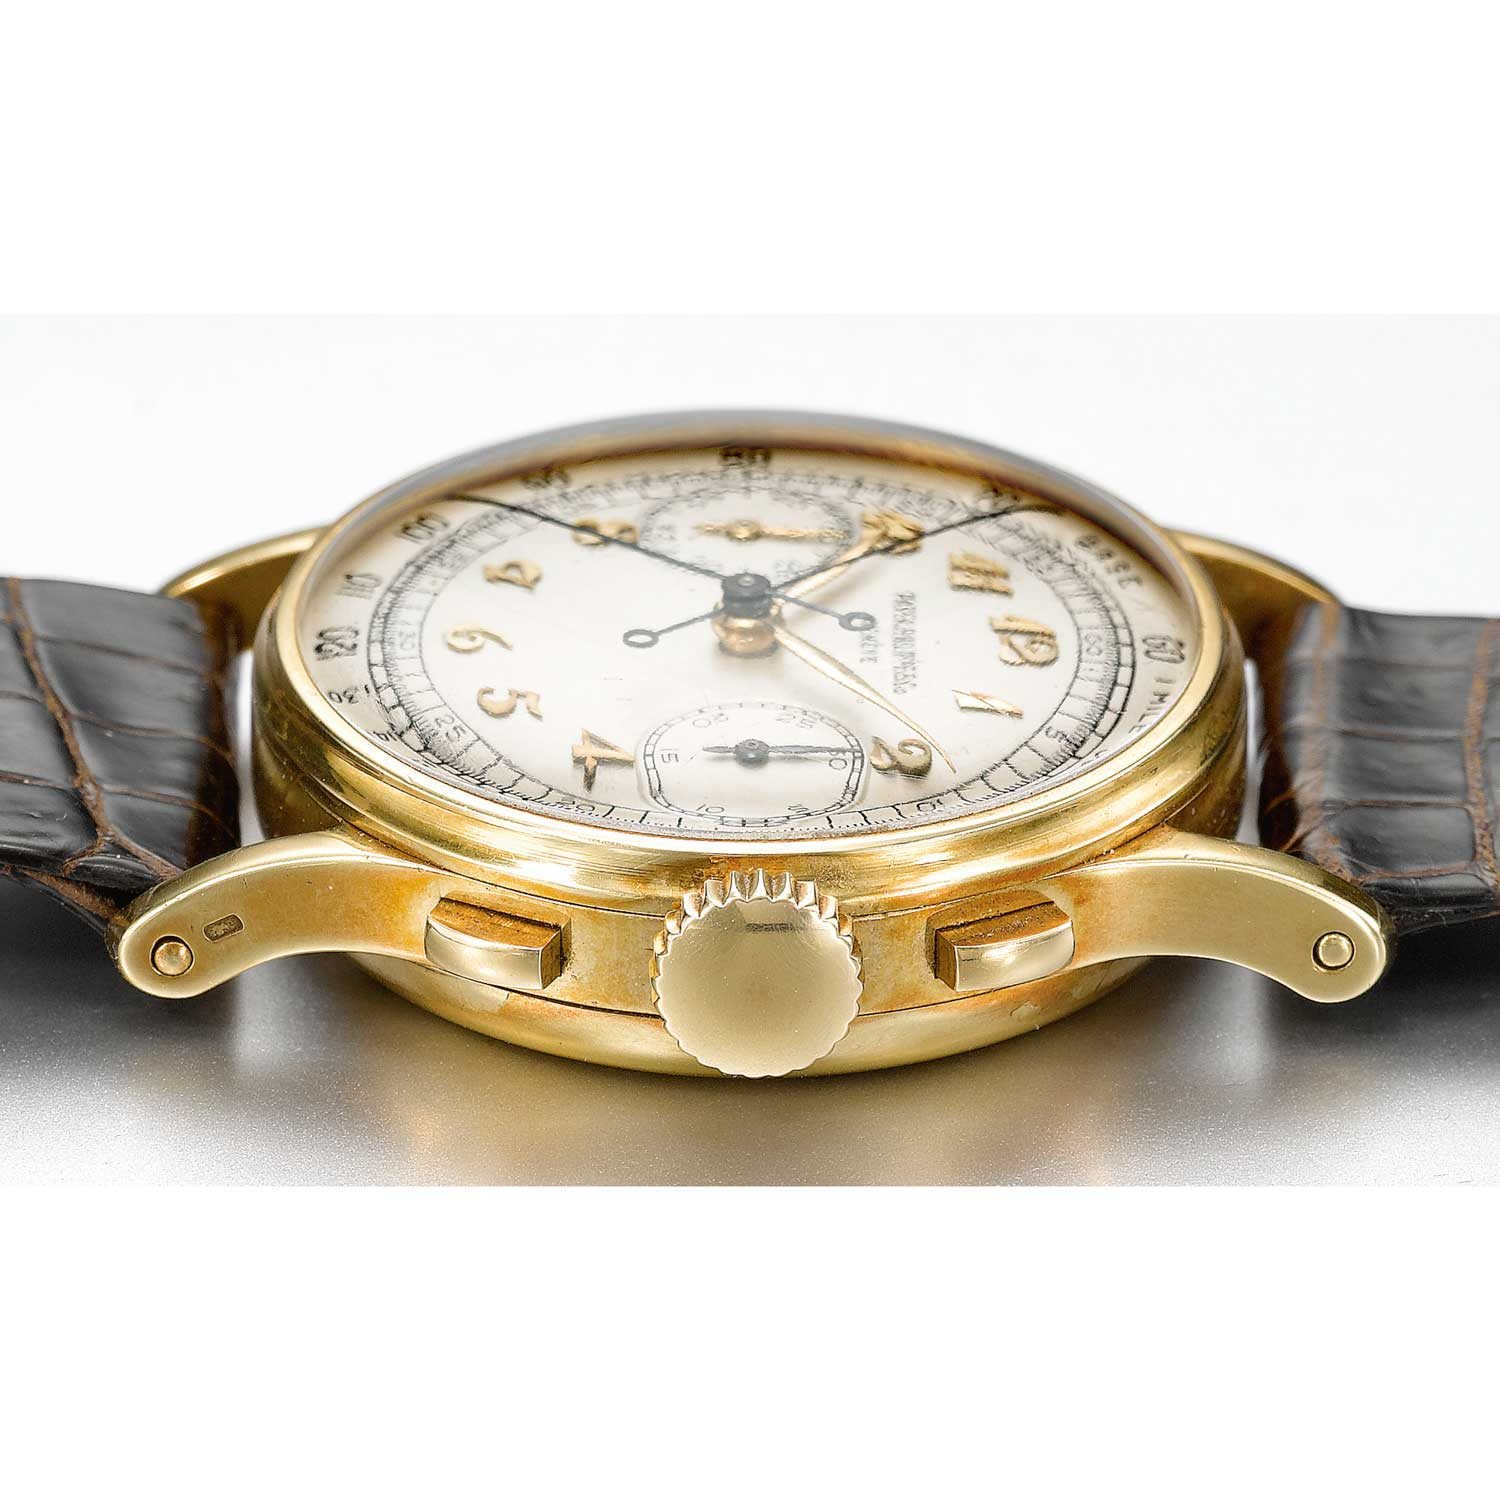 Case side of the 1946 Patek Philippe ref. 1436 yellow gold split second chronograph with Breguet numerals (Sothebys.com)